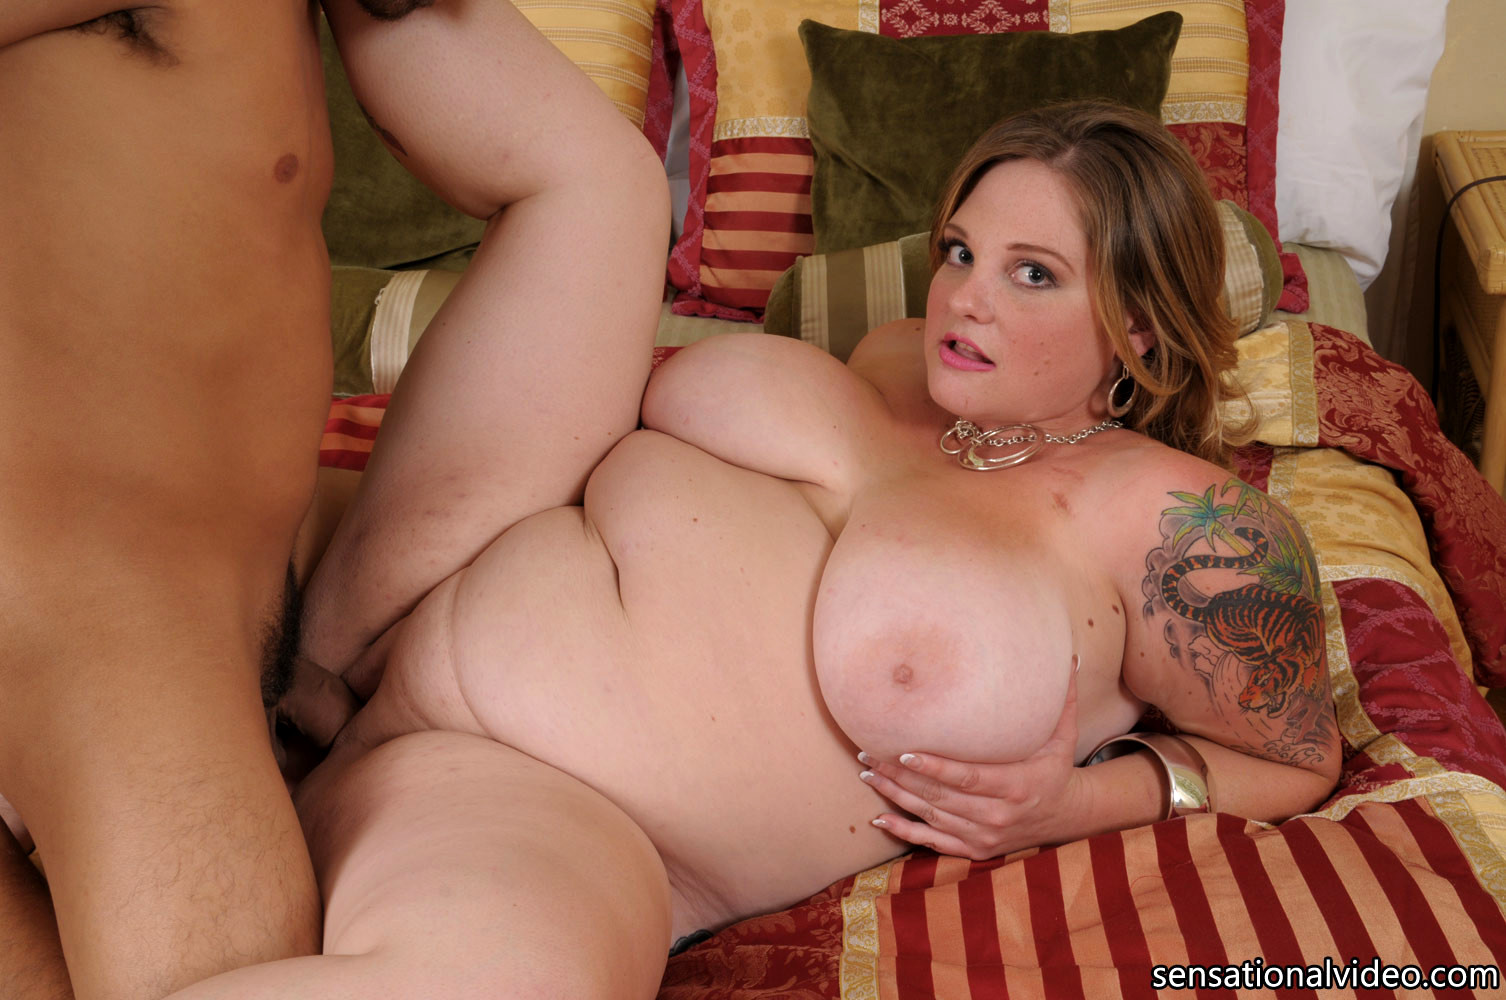 Babe Today Plumper Pass Kali Kala Lina Average Bbw Mobi -5944